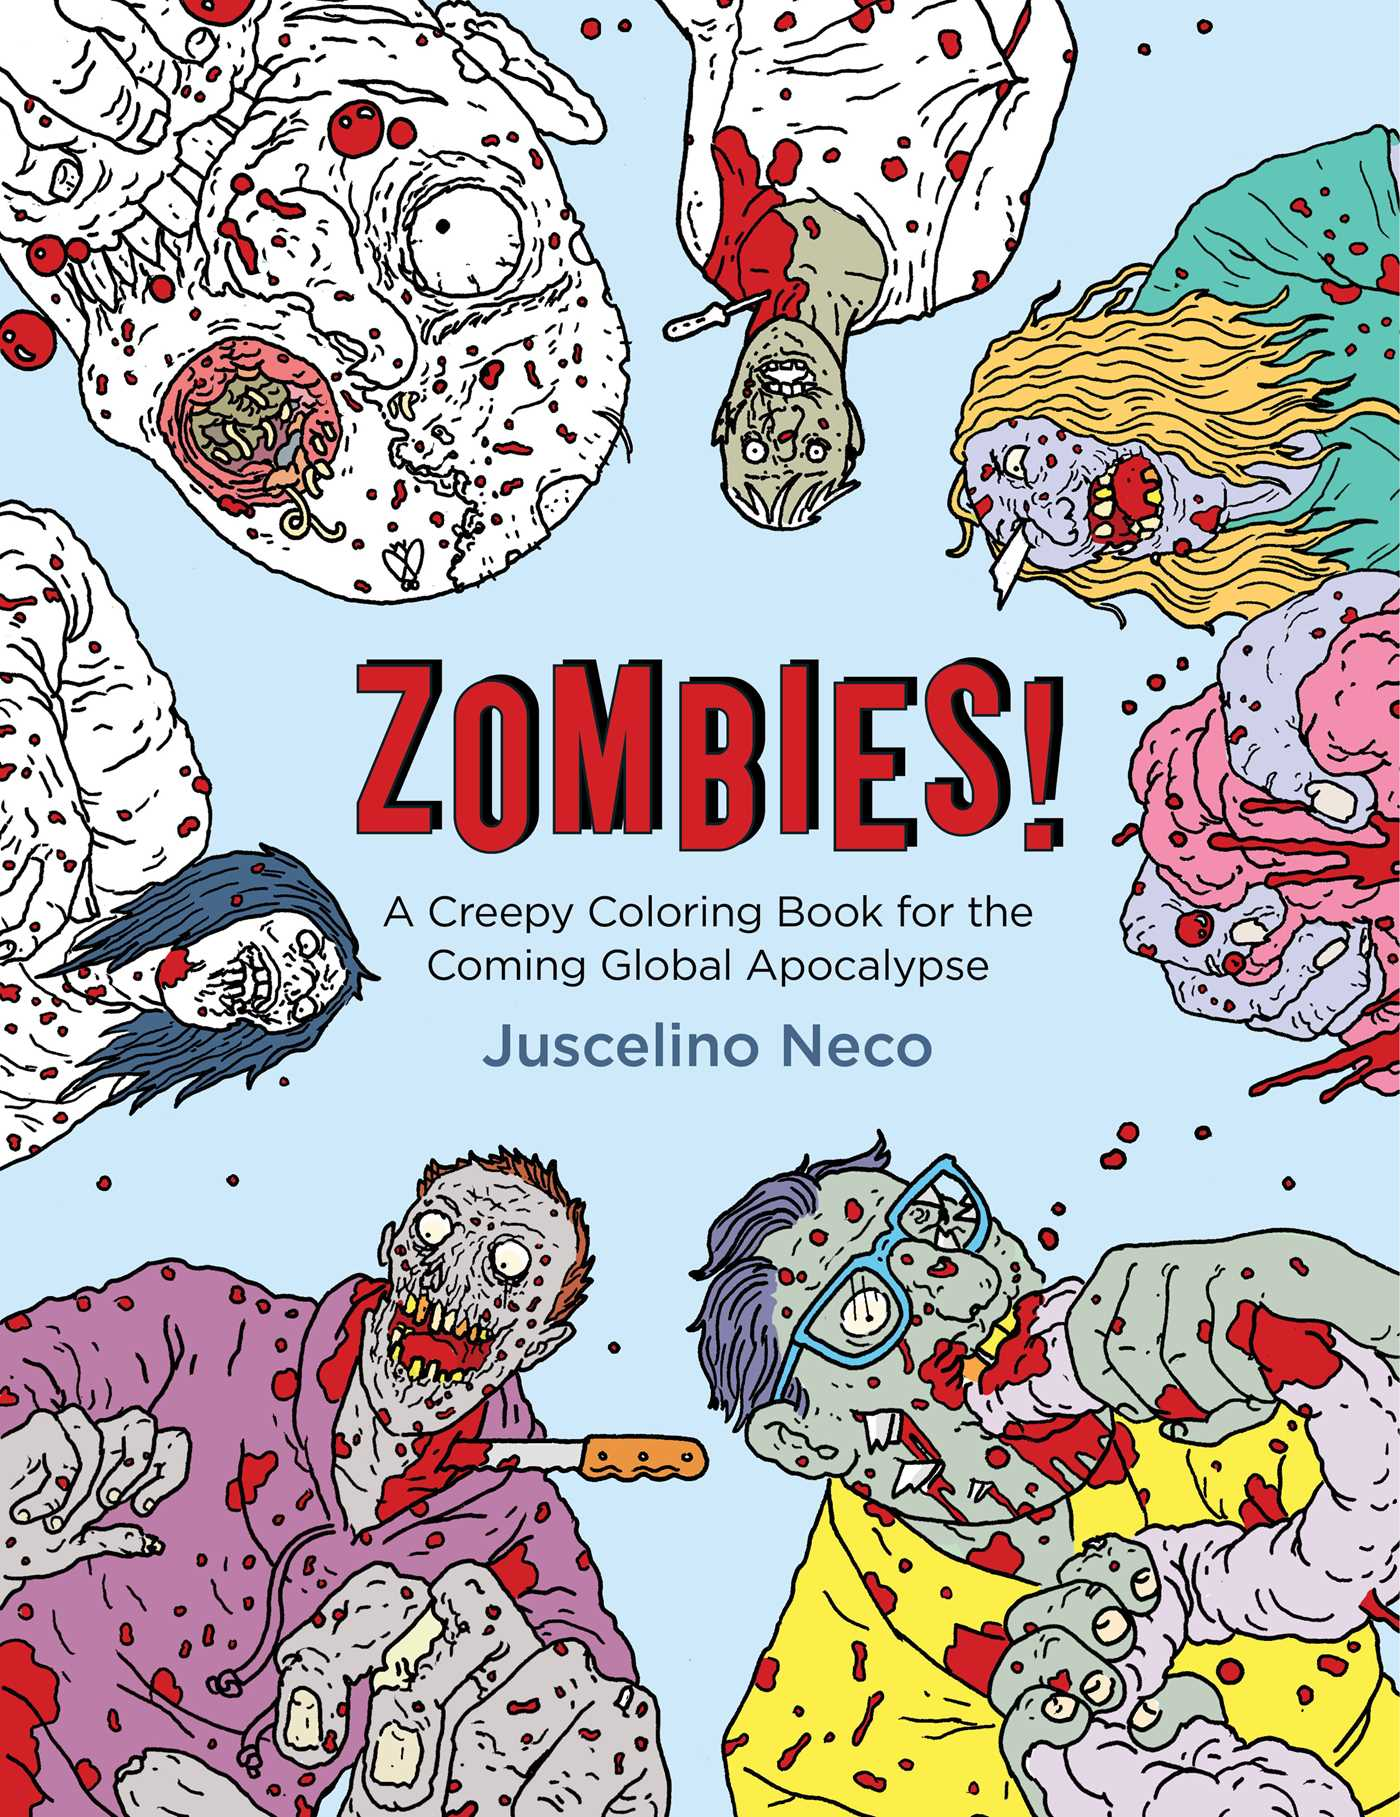 zombies book by juscelino neco official publisher page